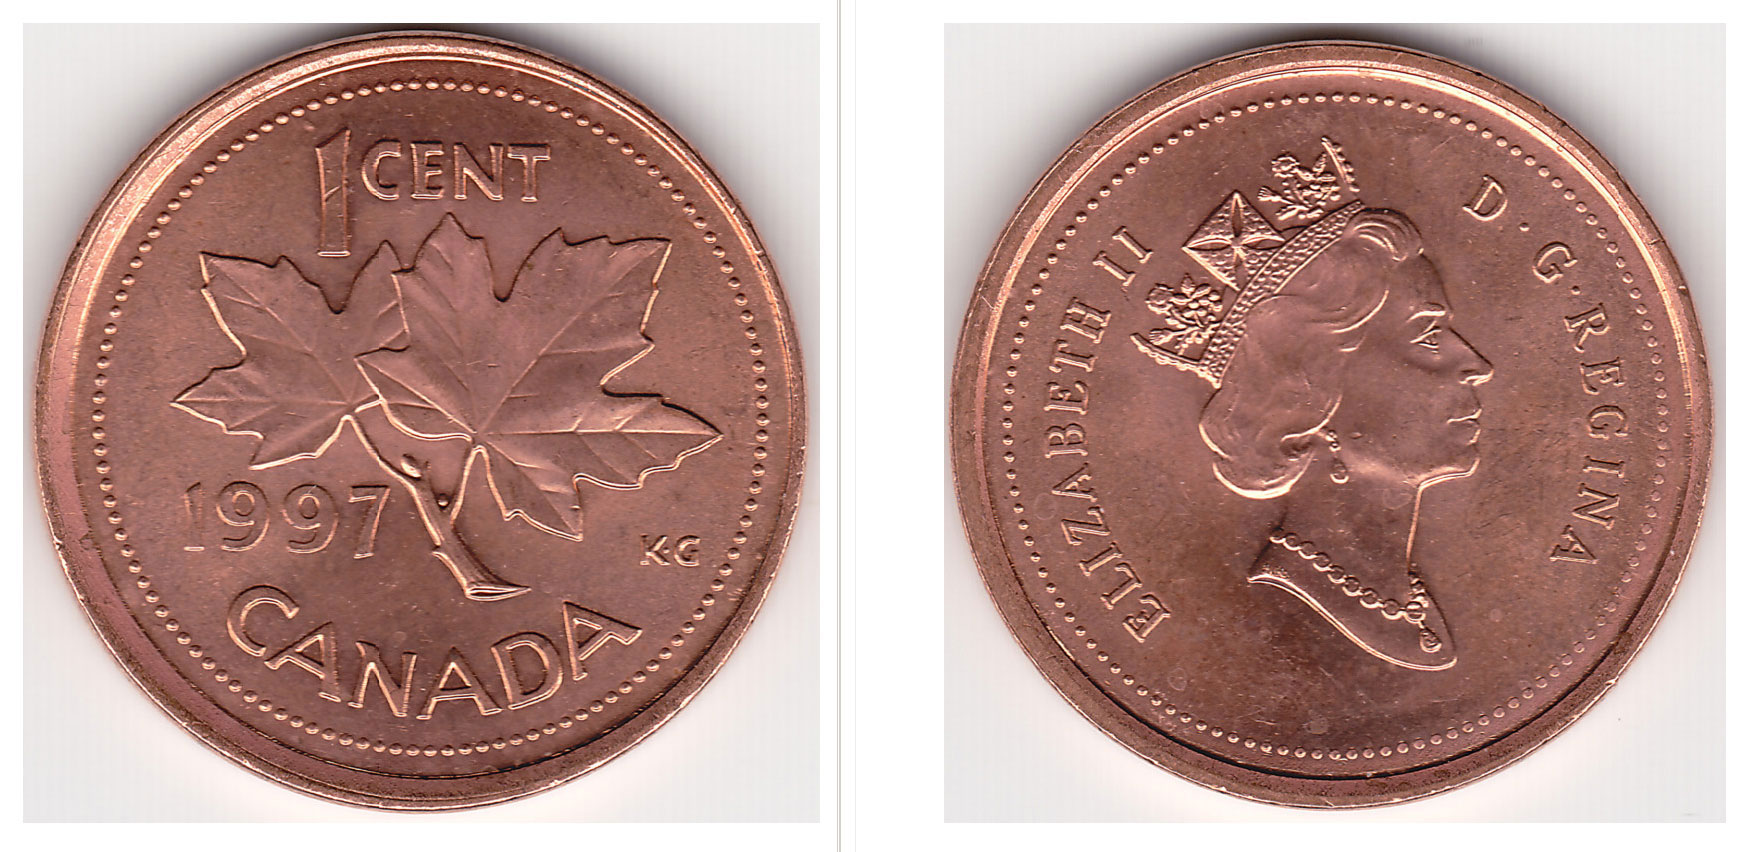 Coins And Canada 1 Cent 1977 Canadian Coins Price Guide And Values